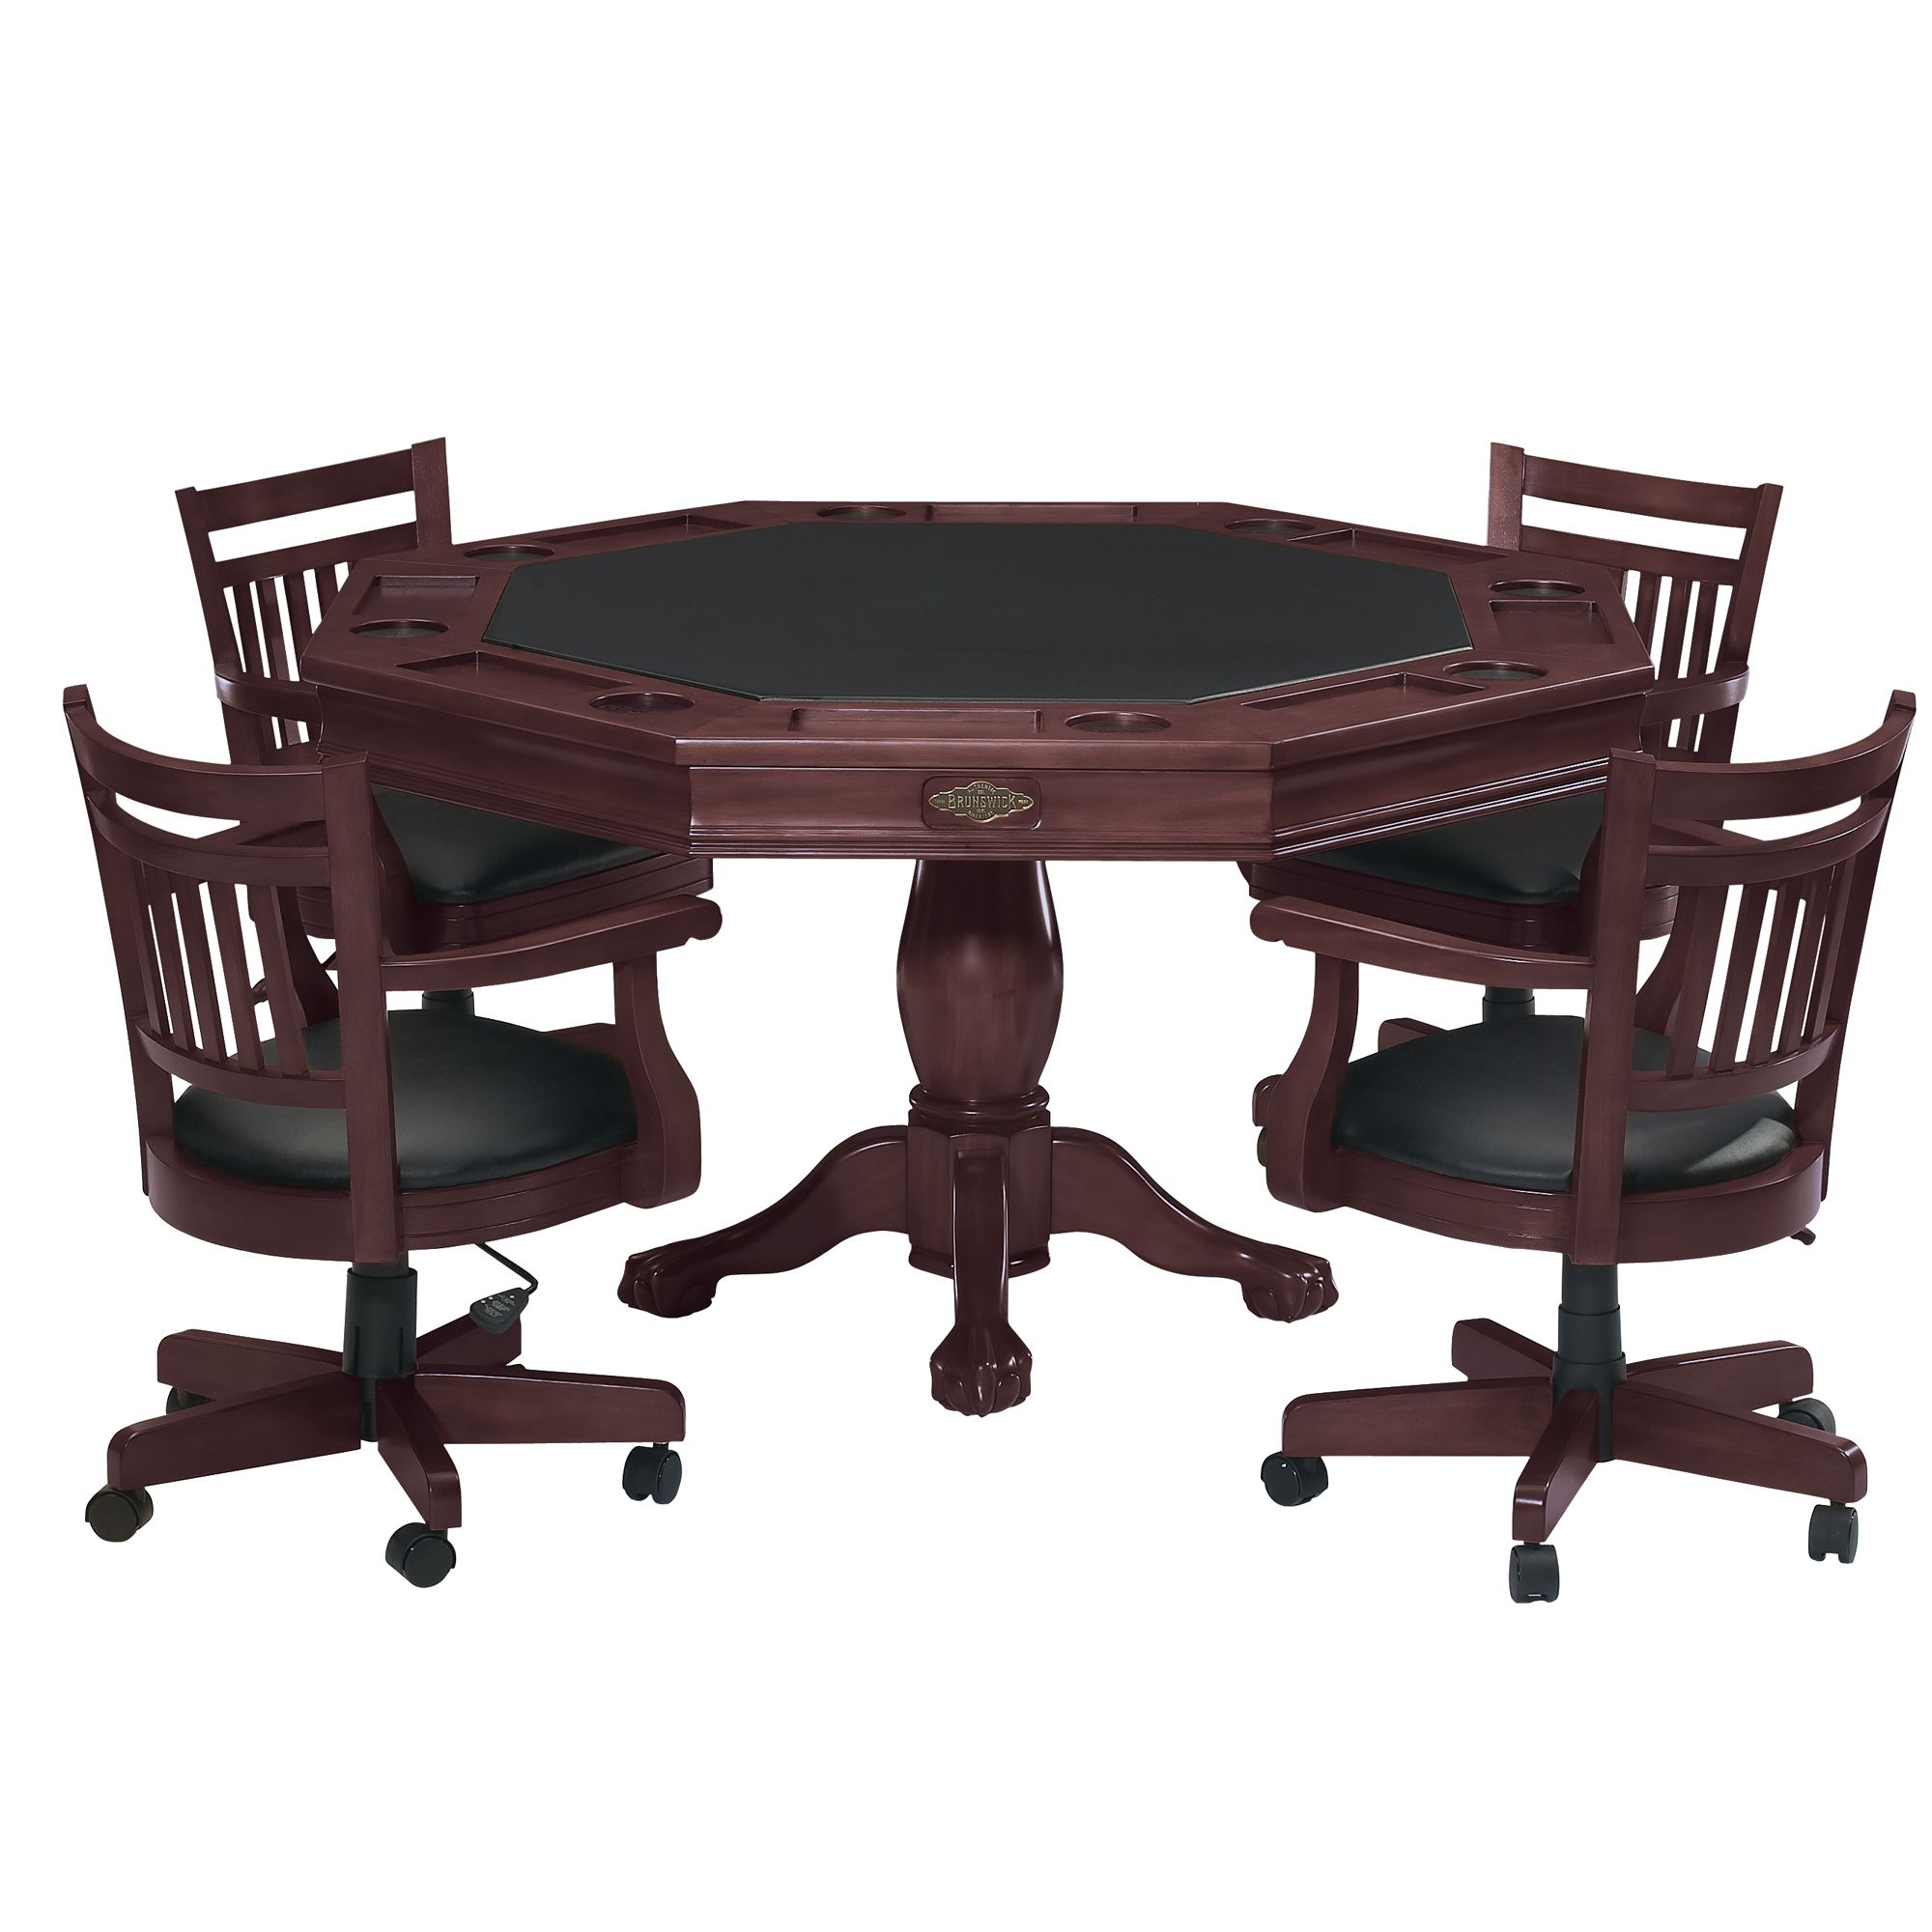 Poker Table And Chairs Brunswick 26038010000 Heritage Ball And Claw Poker Table